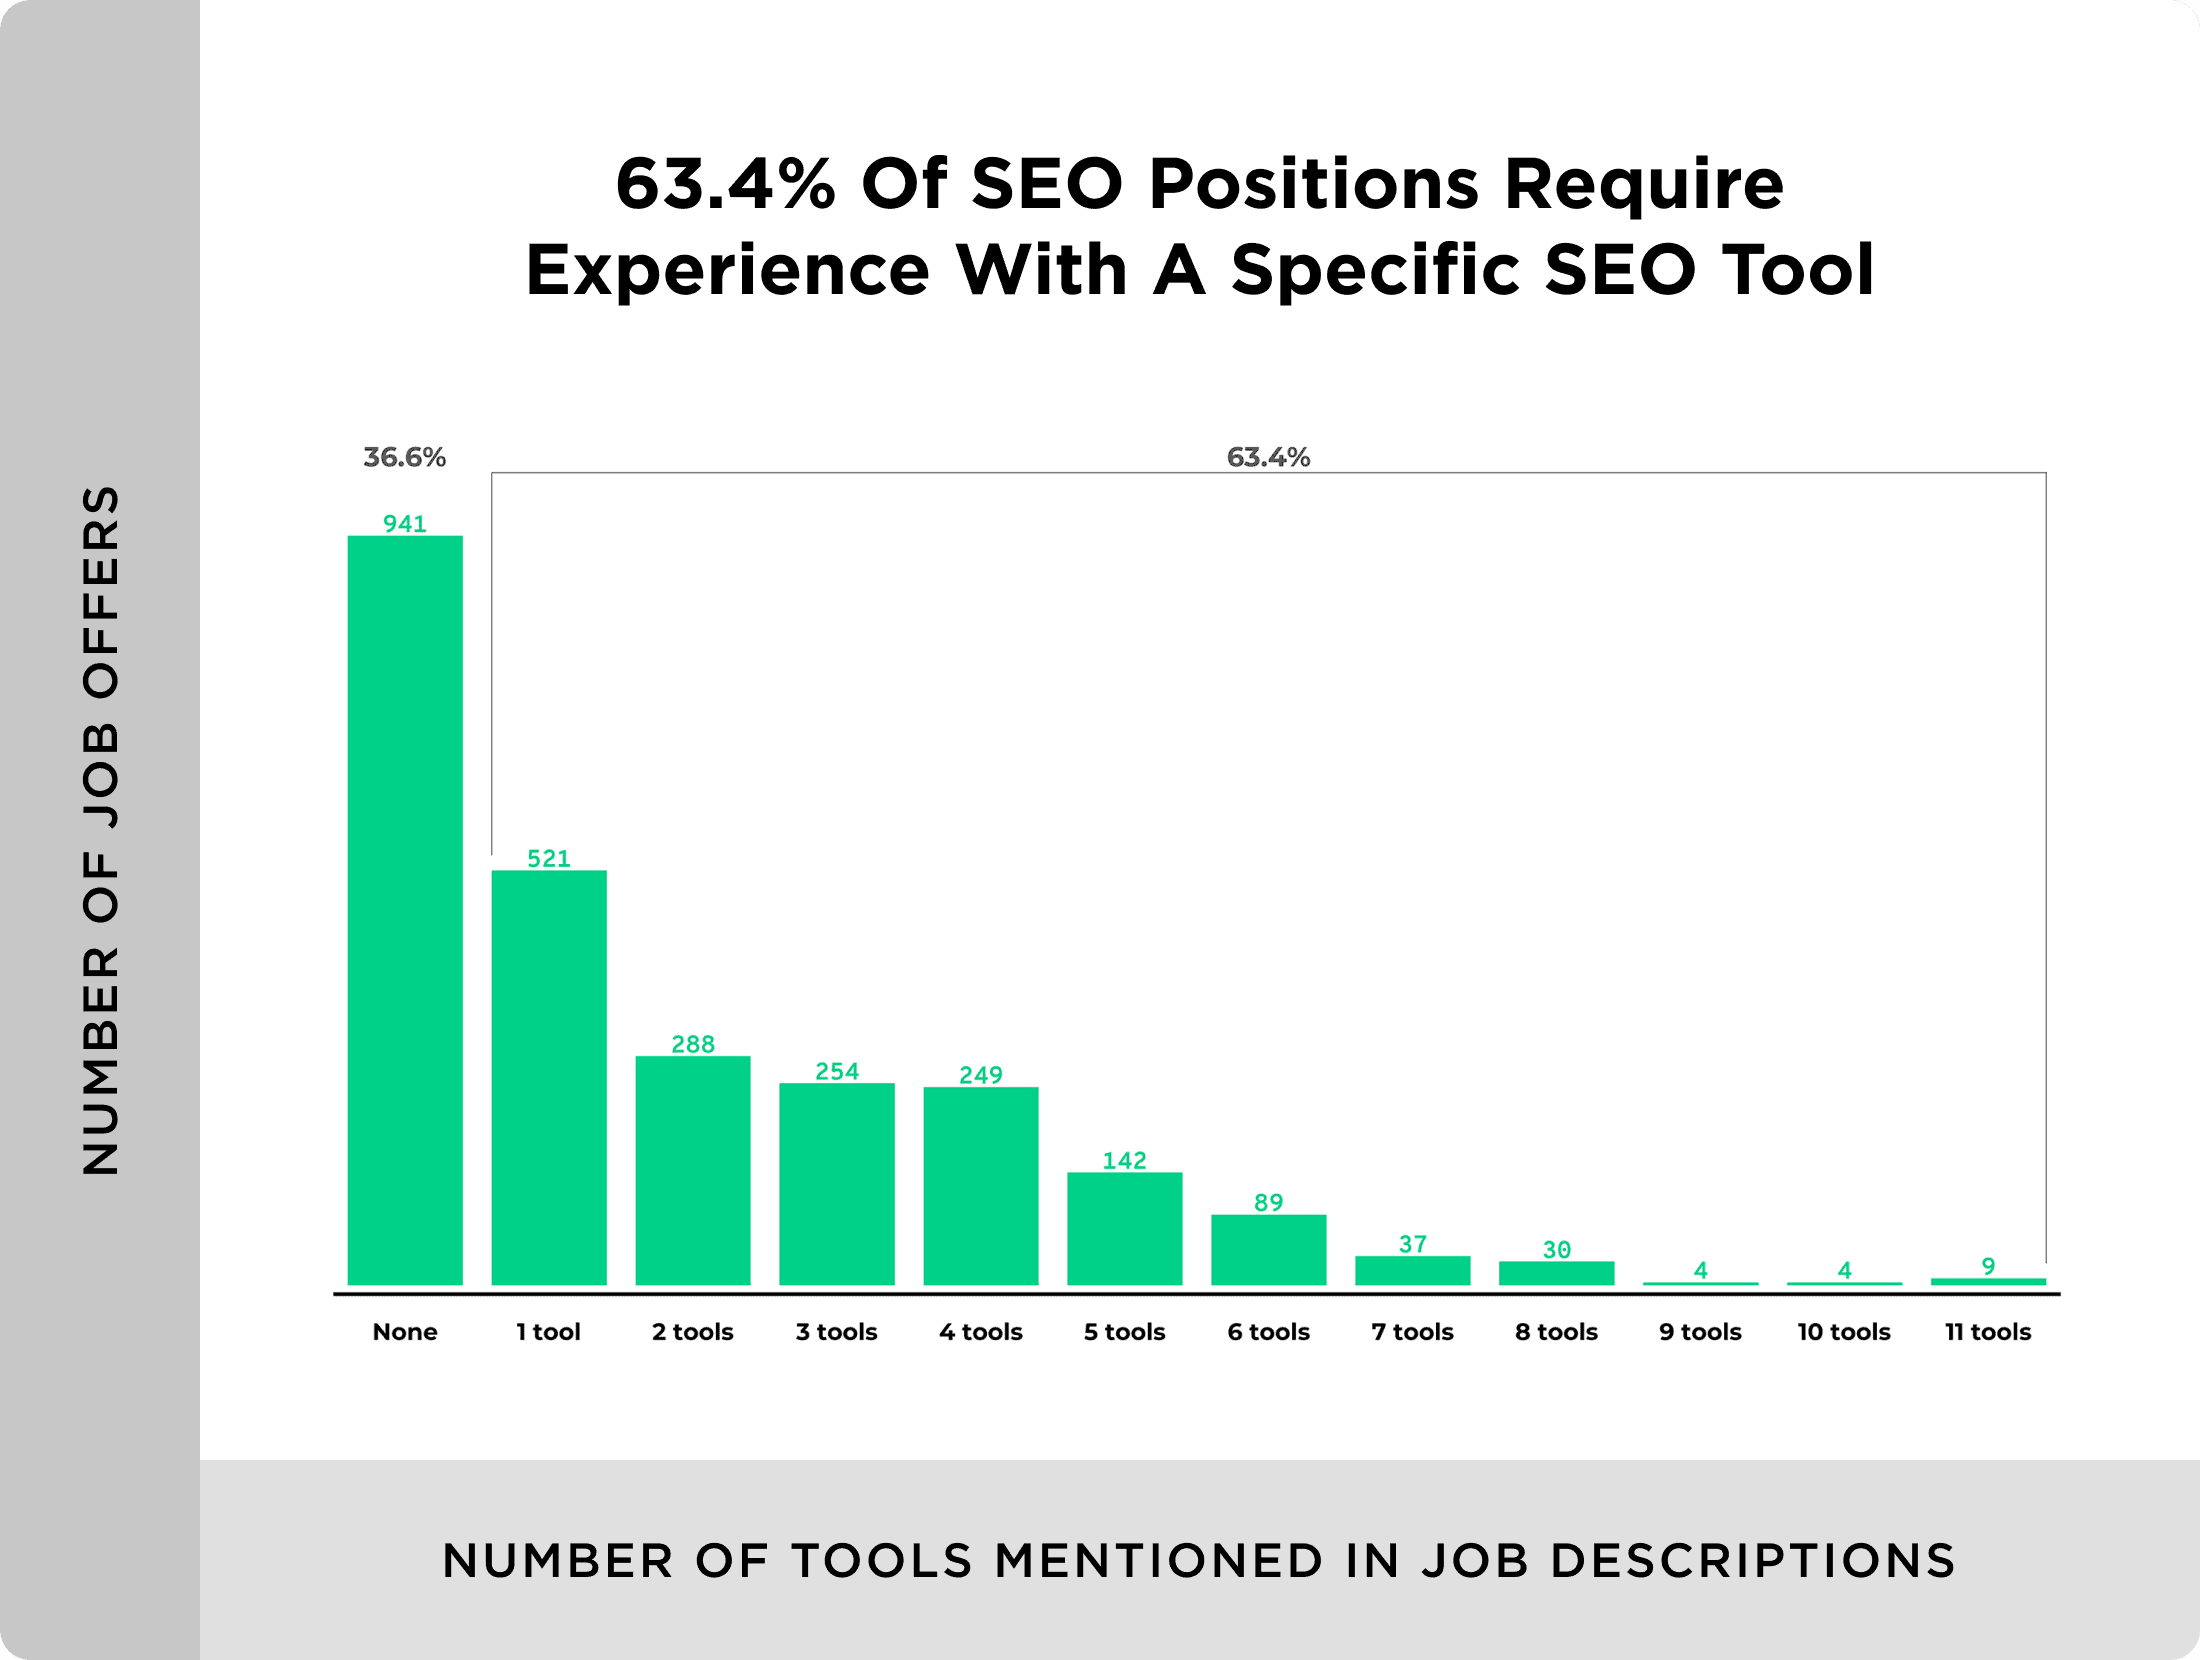 Number of tools mentioned in job descriptions